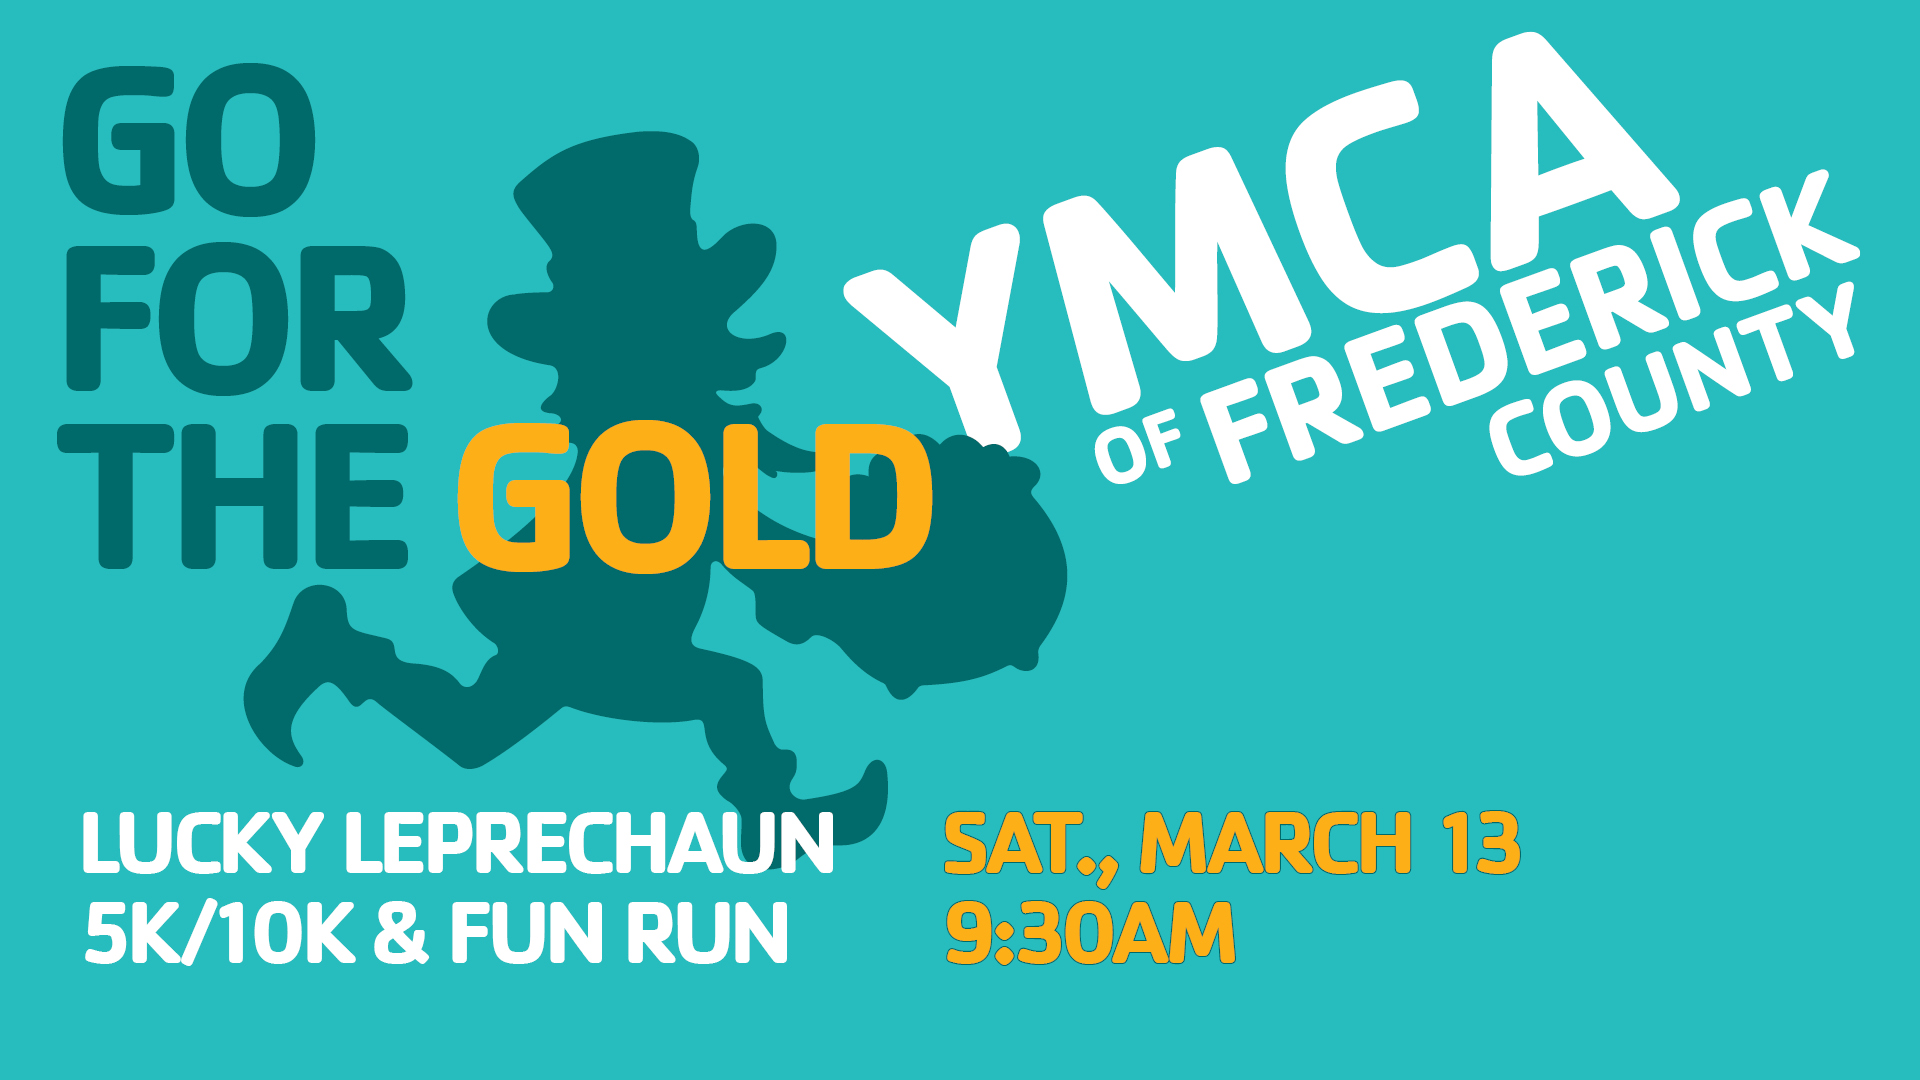 lucky leprechaun race graphic